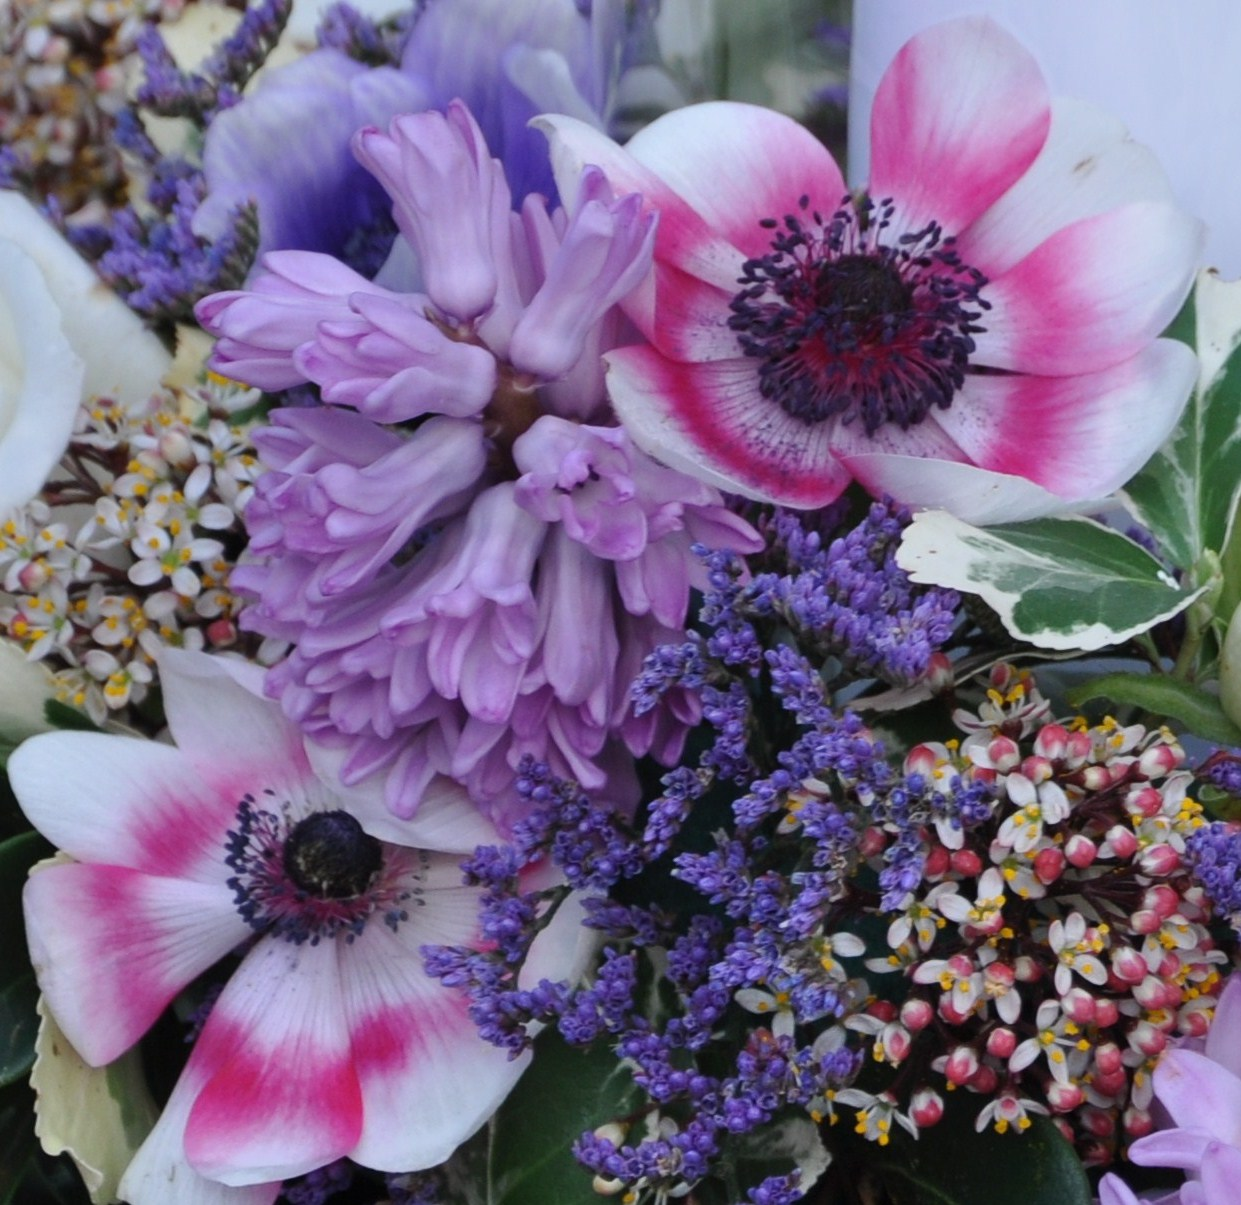 Helen Jane Floristry Favourite Flower for March Anemone